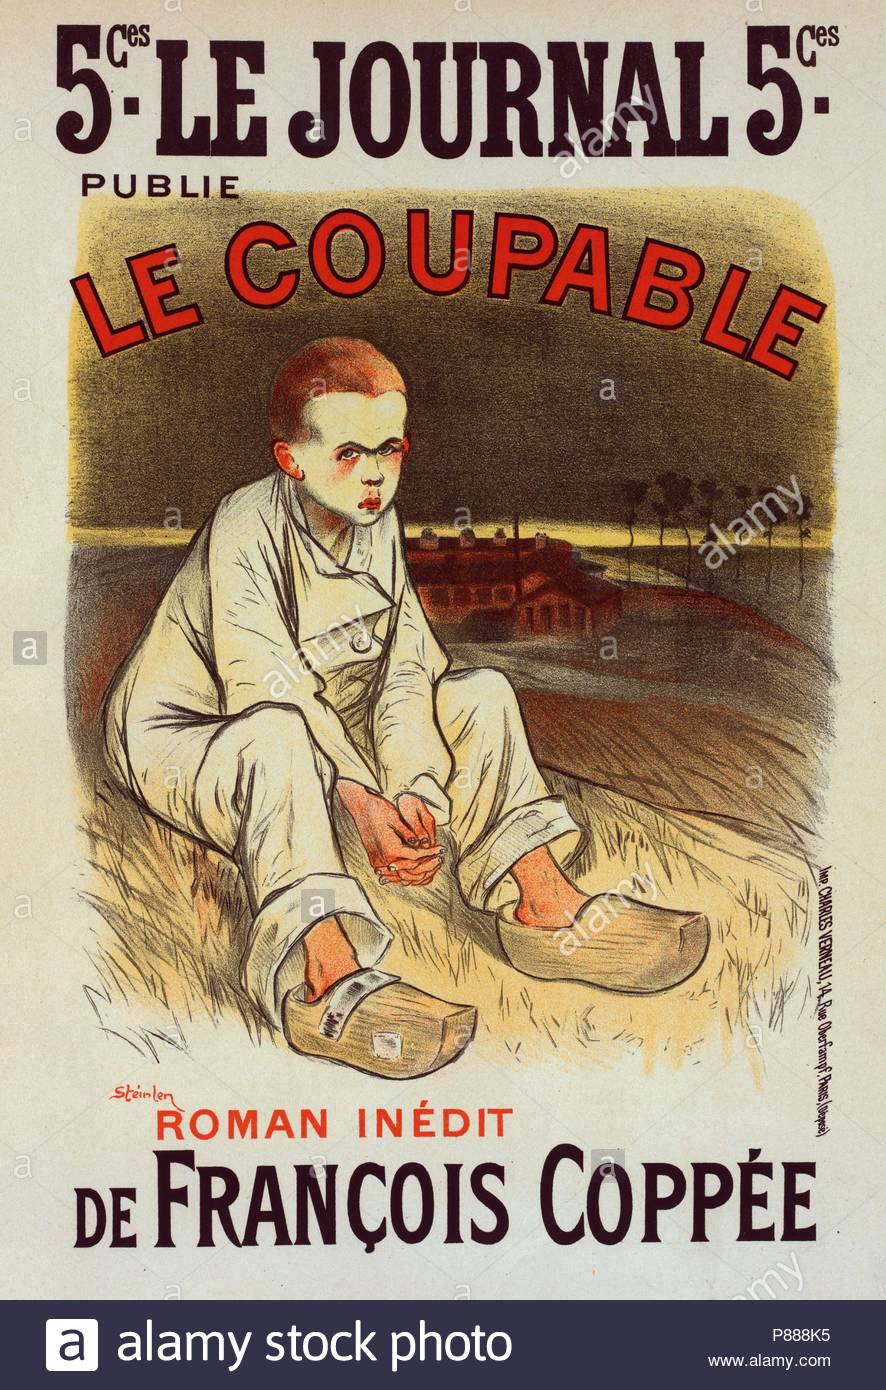 Poster for the book le Coupable, by François Coppée, published by le Journal. Théophile Alexandre Steinlen, frequently referred to as just Steinlen 1859 – 1923, a Swiss-born French Art Nouveau painter and printmaker. - Stock Image